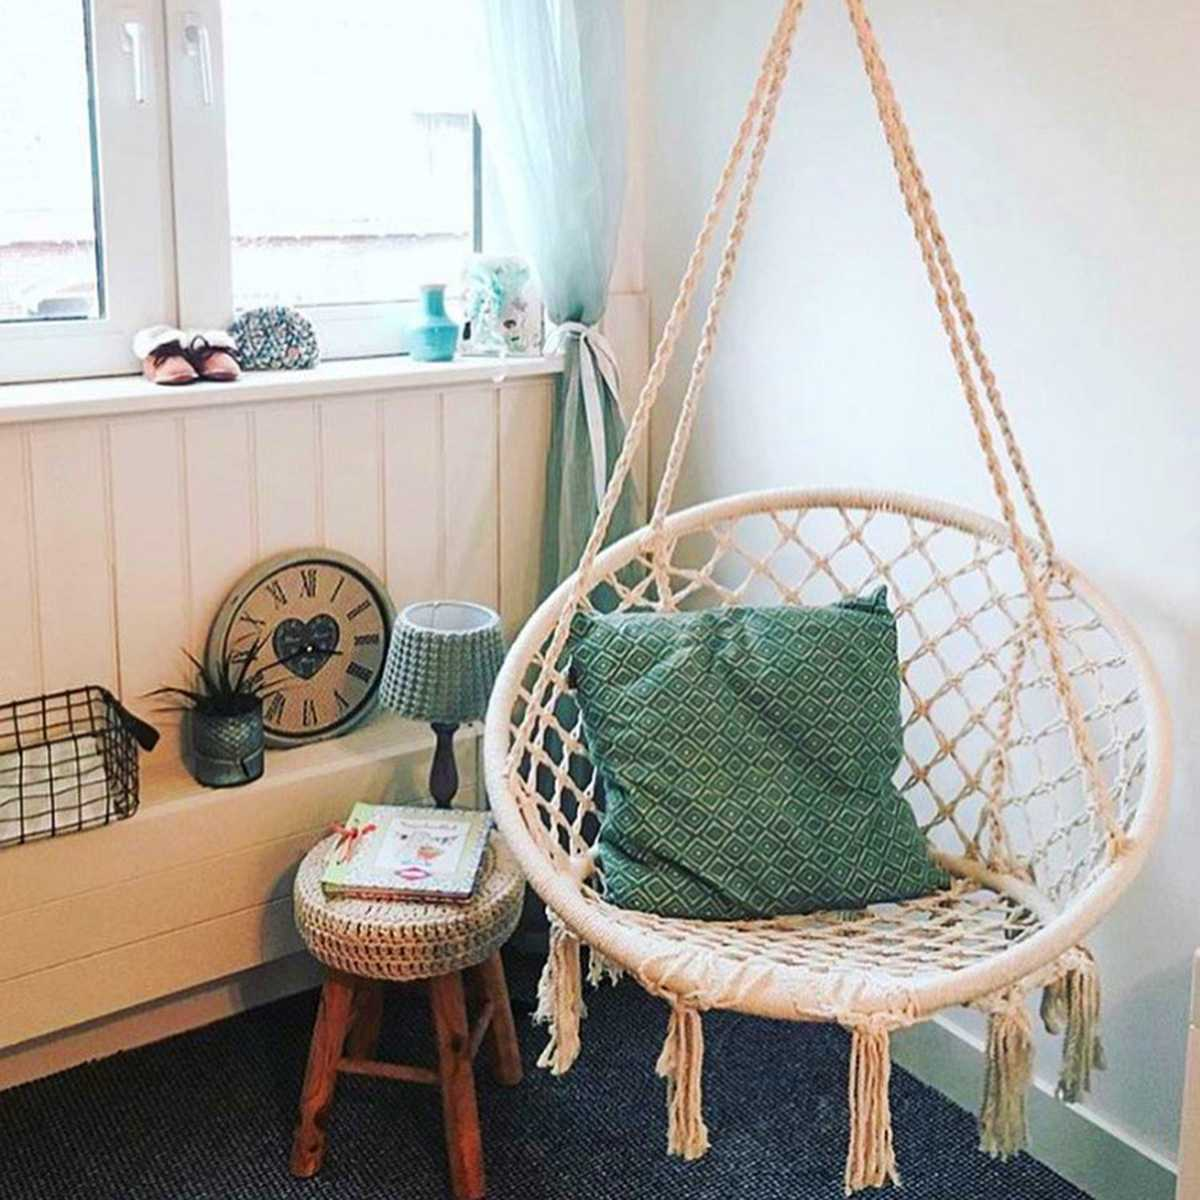 Nordic Hammock Handmade Knitted Garden Bedroom Balcony Dormitory Outdoor Kids Swing Bed Adult Swinging Hanging Chair Hammock